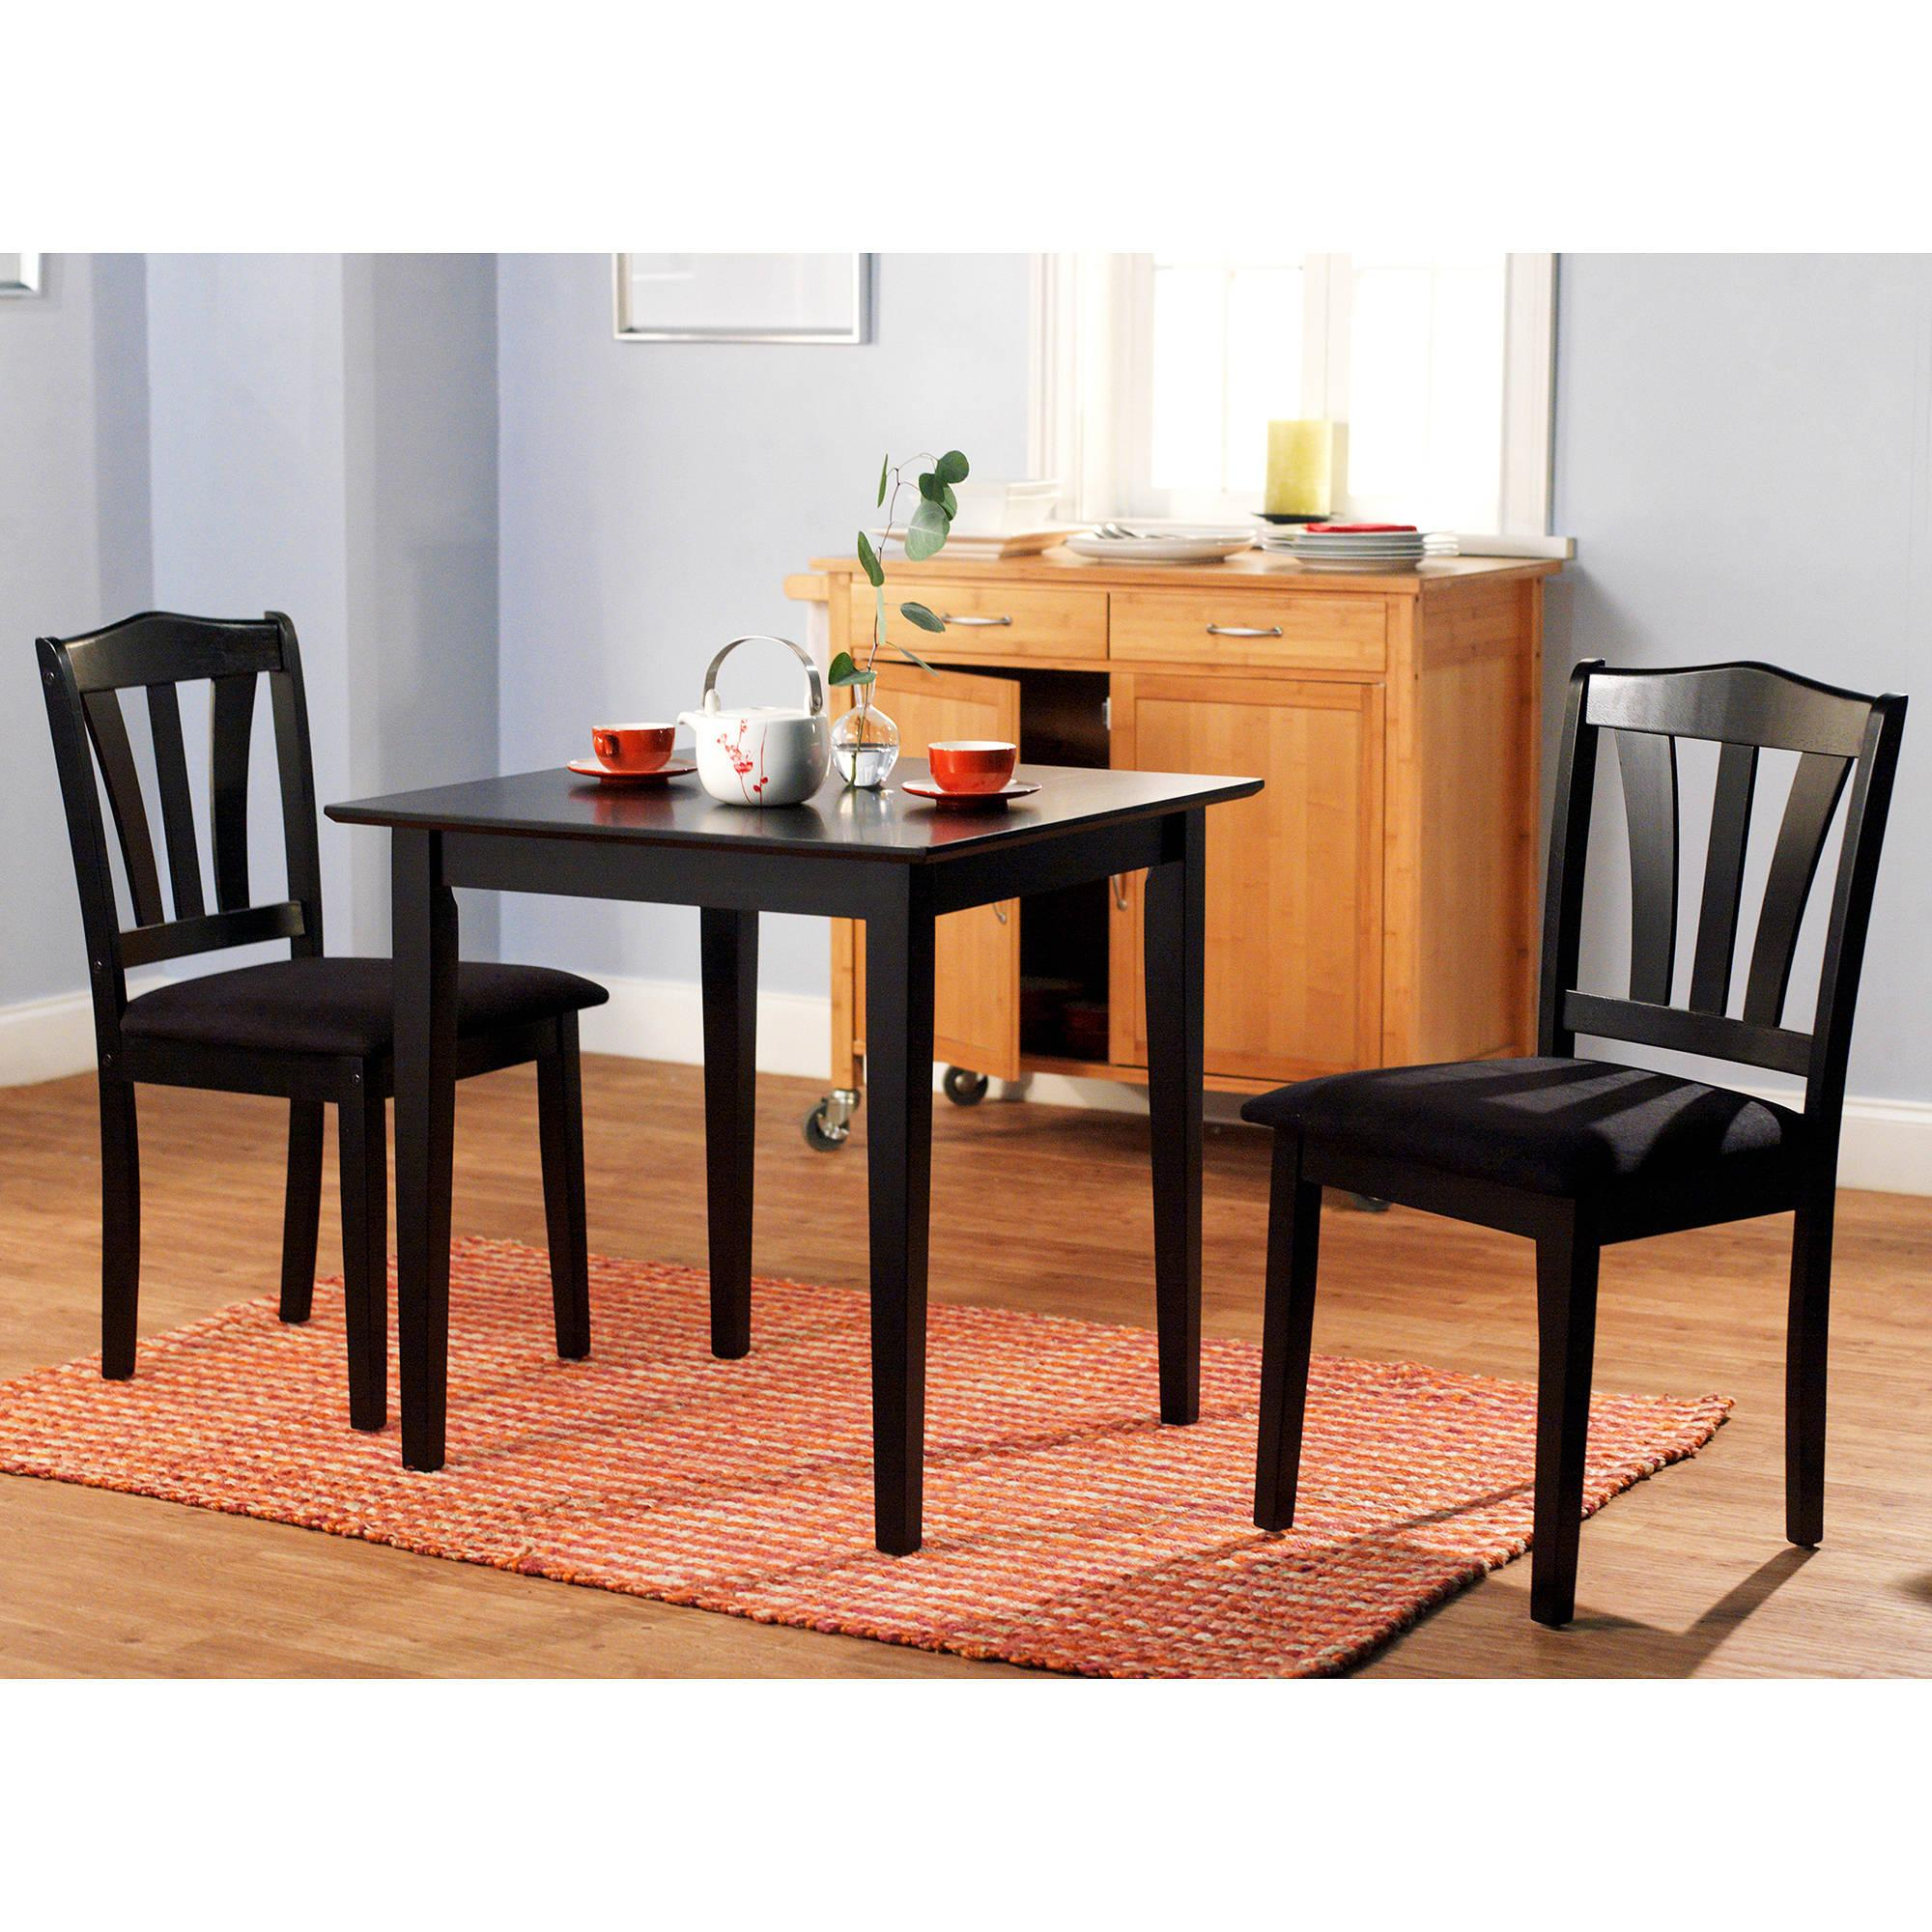 3 Piece Dining Set Table 2 Chairs Kitchen Room Wood Furniture ...